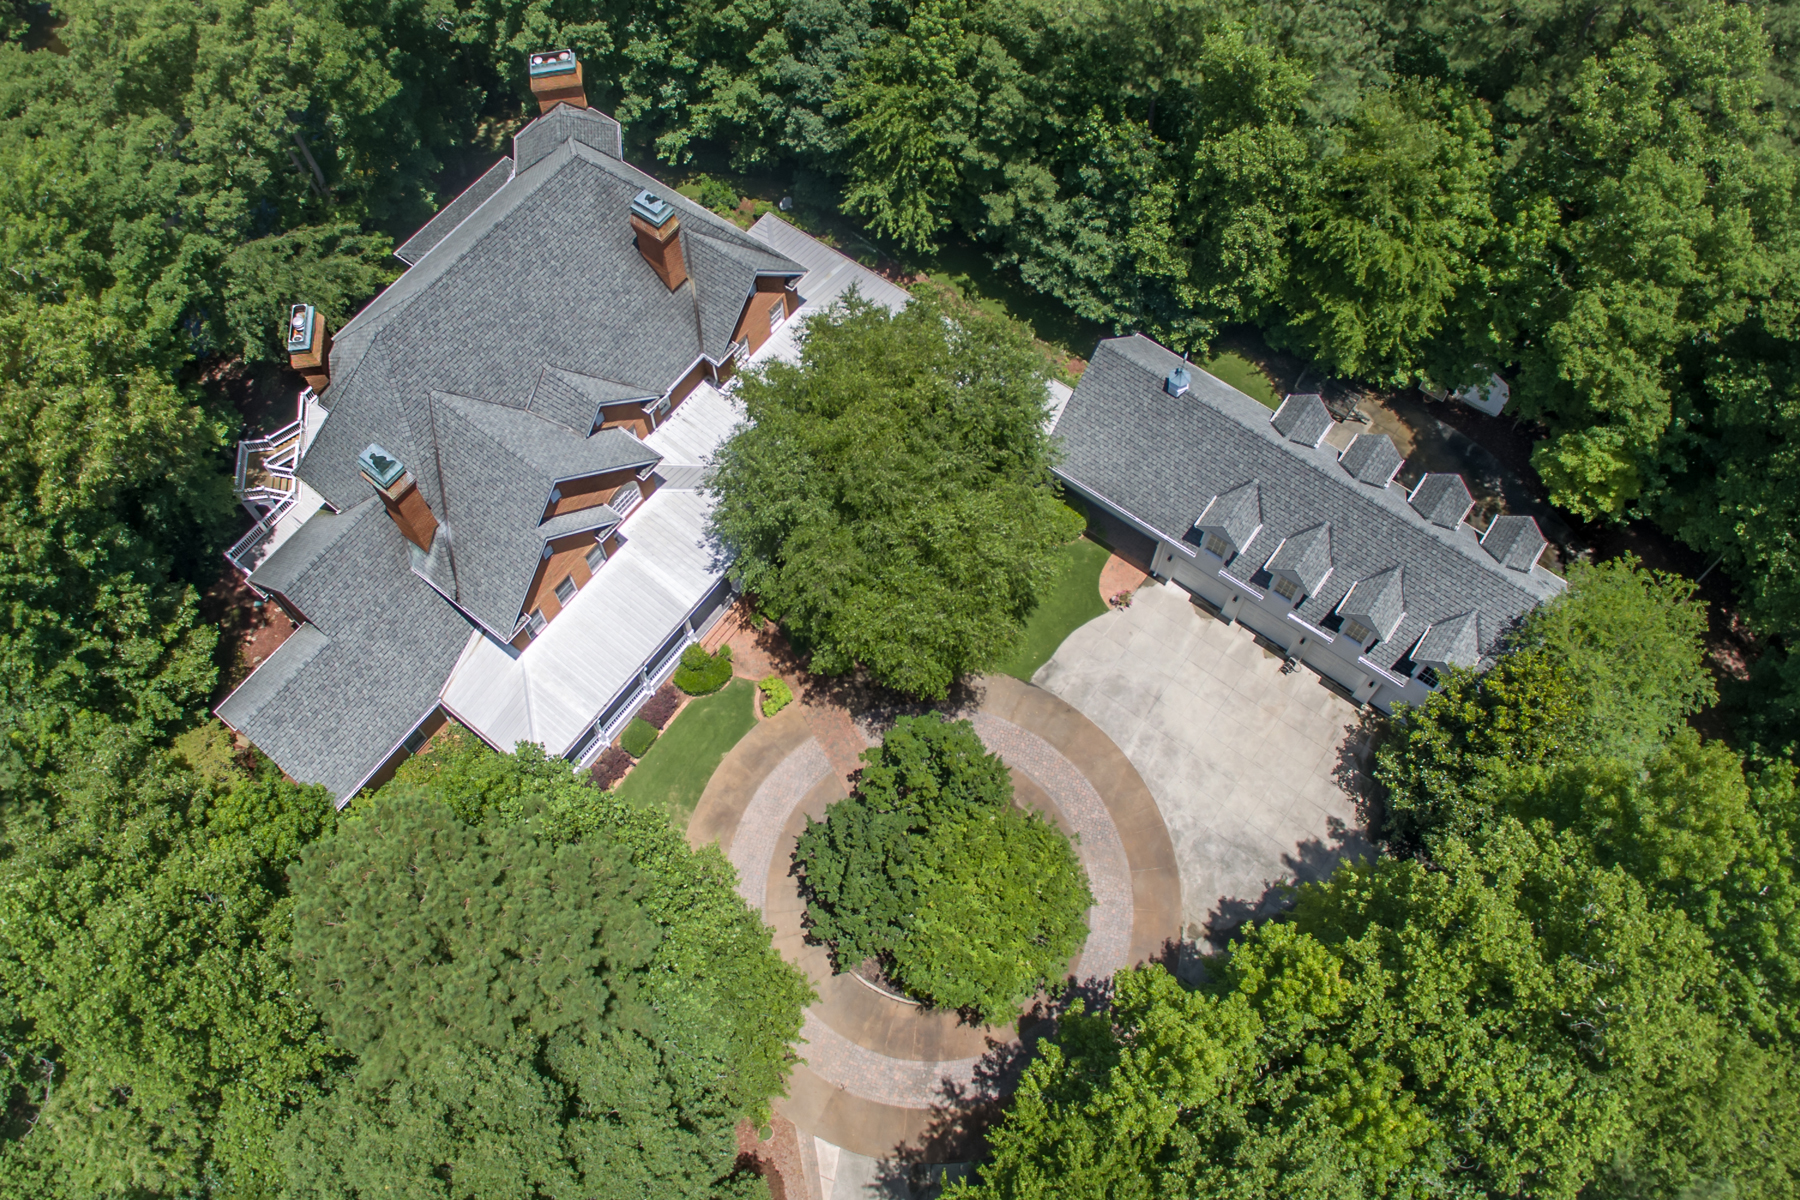 Single Family Home for Sale at Magnificent Gated Estate 1836 County Line Road NW Acworth, Georgia 30101 United States